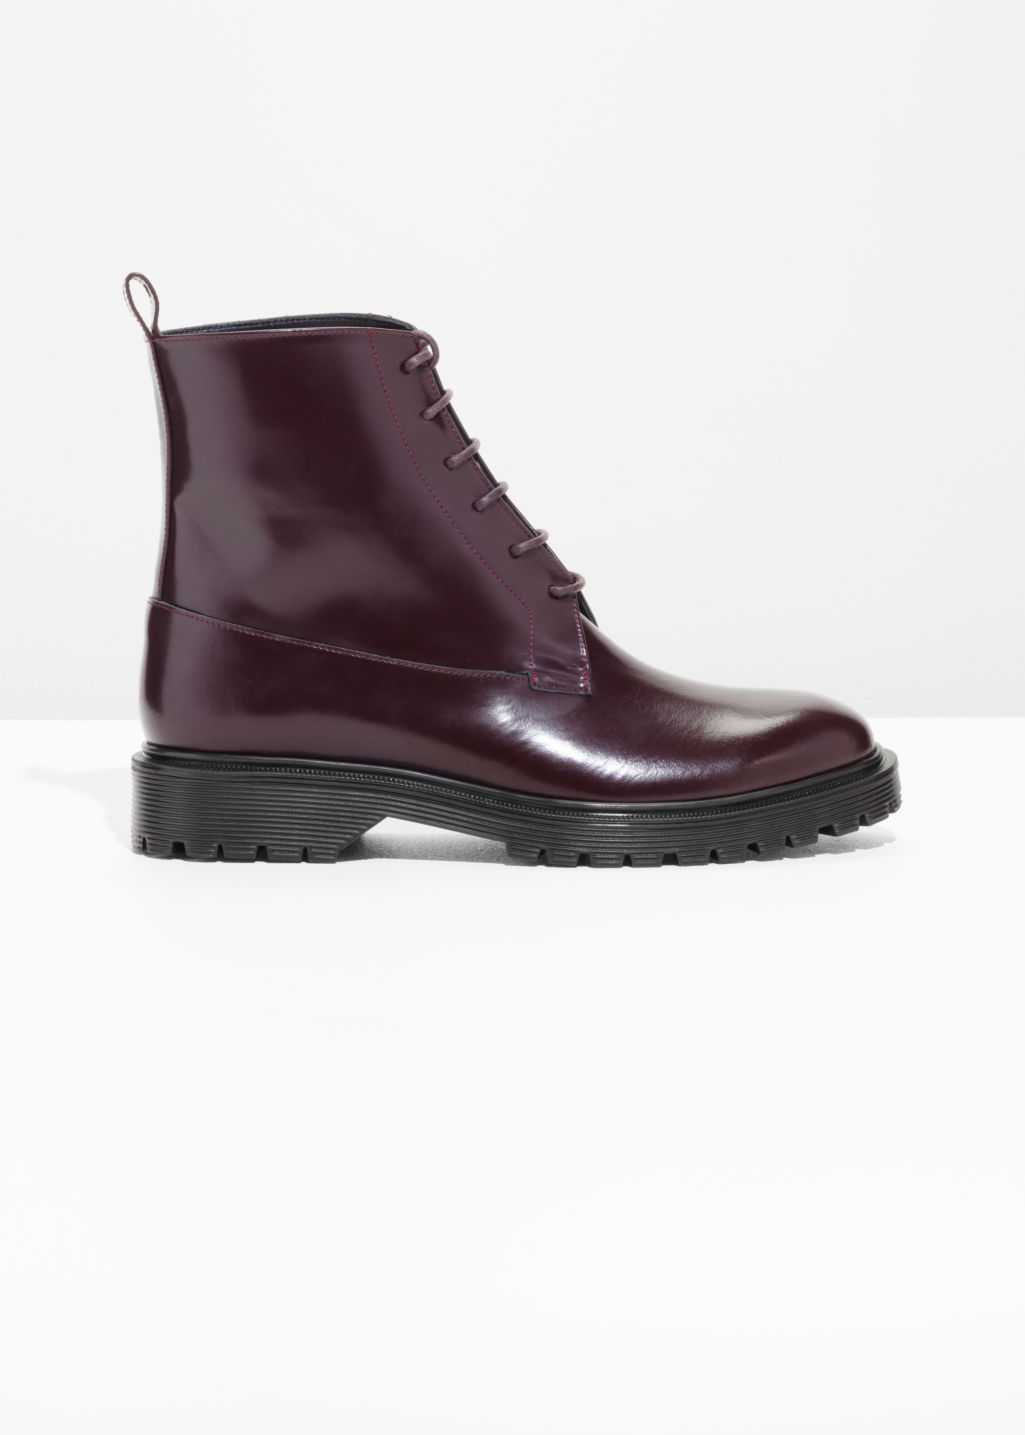 & OTHER STORIES Lace-Up Leather Boots